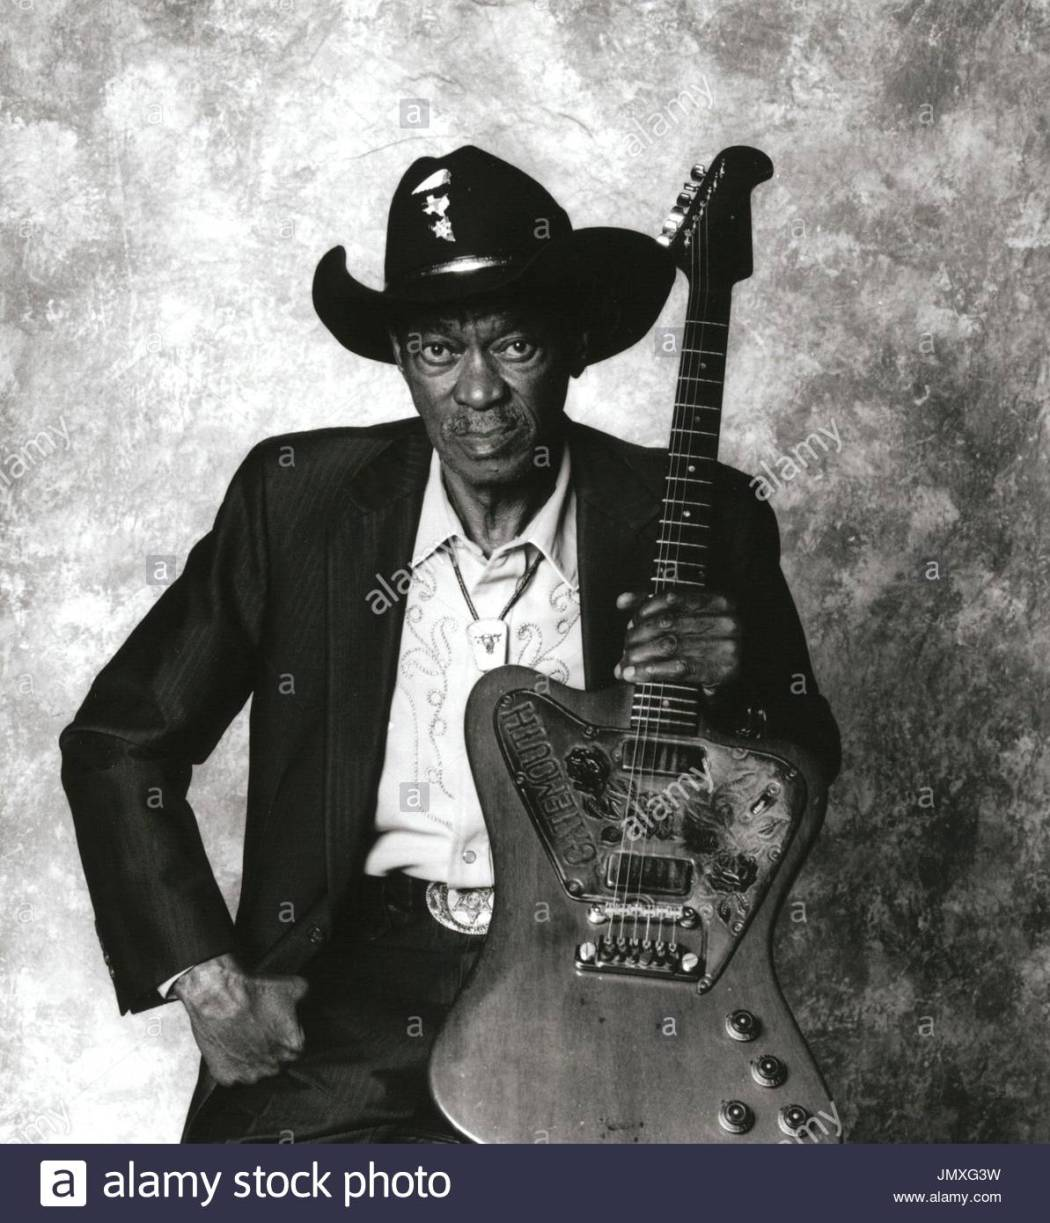 clarence-gatemouth-brown-photographed-in-san-fransisco-ca-1995-rtjohnson-JMXG3W